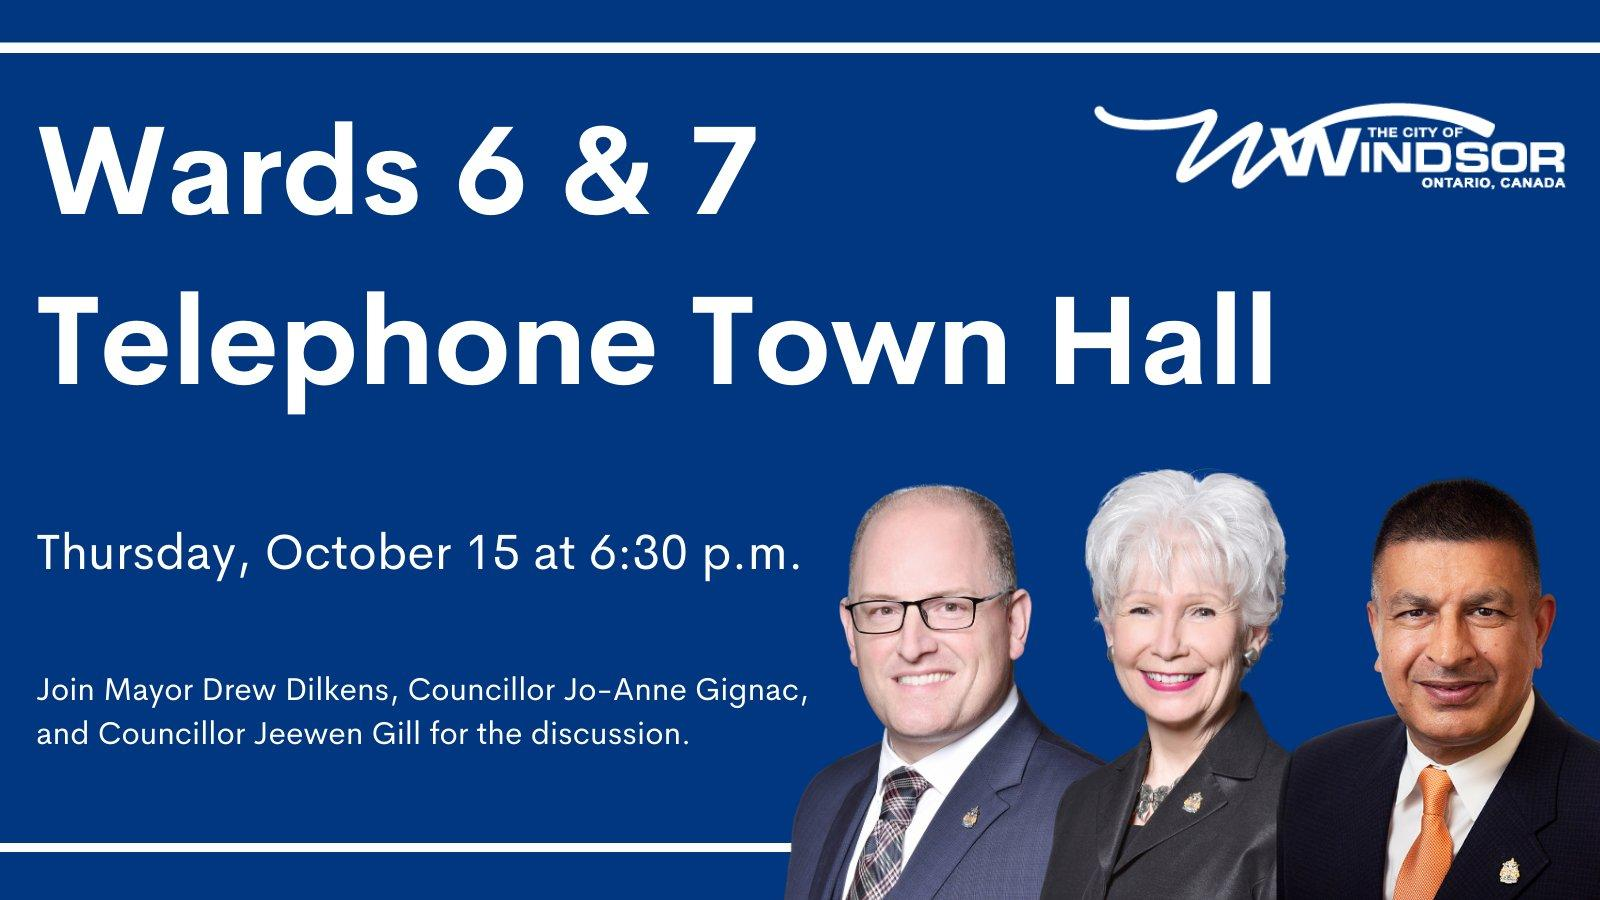 AM800-NEWS-Windsor-Ward-6-7-meeting-October-2020